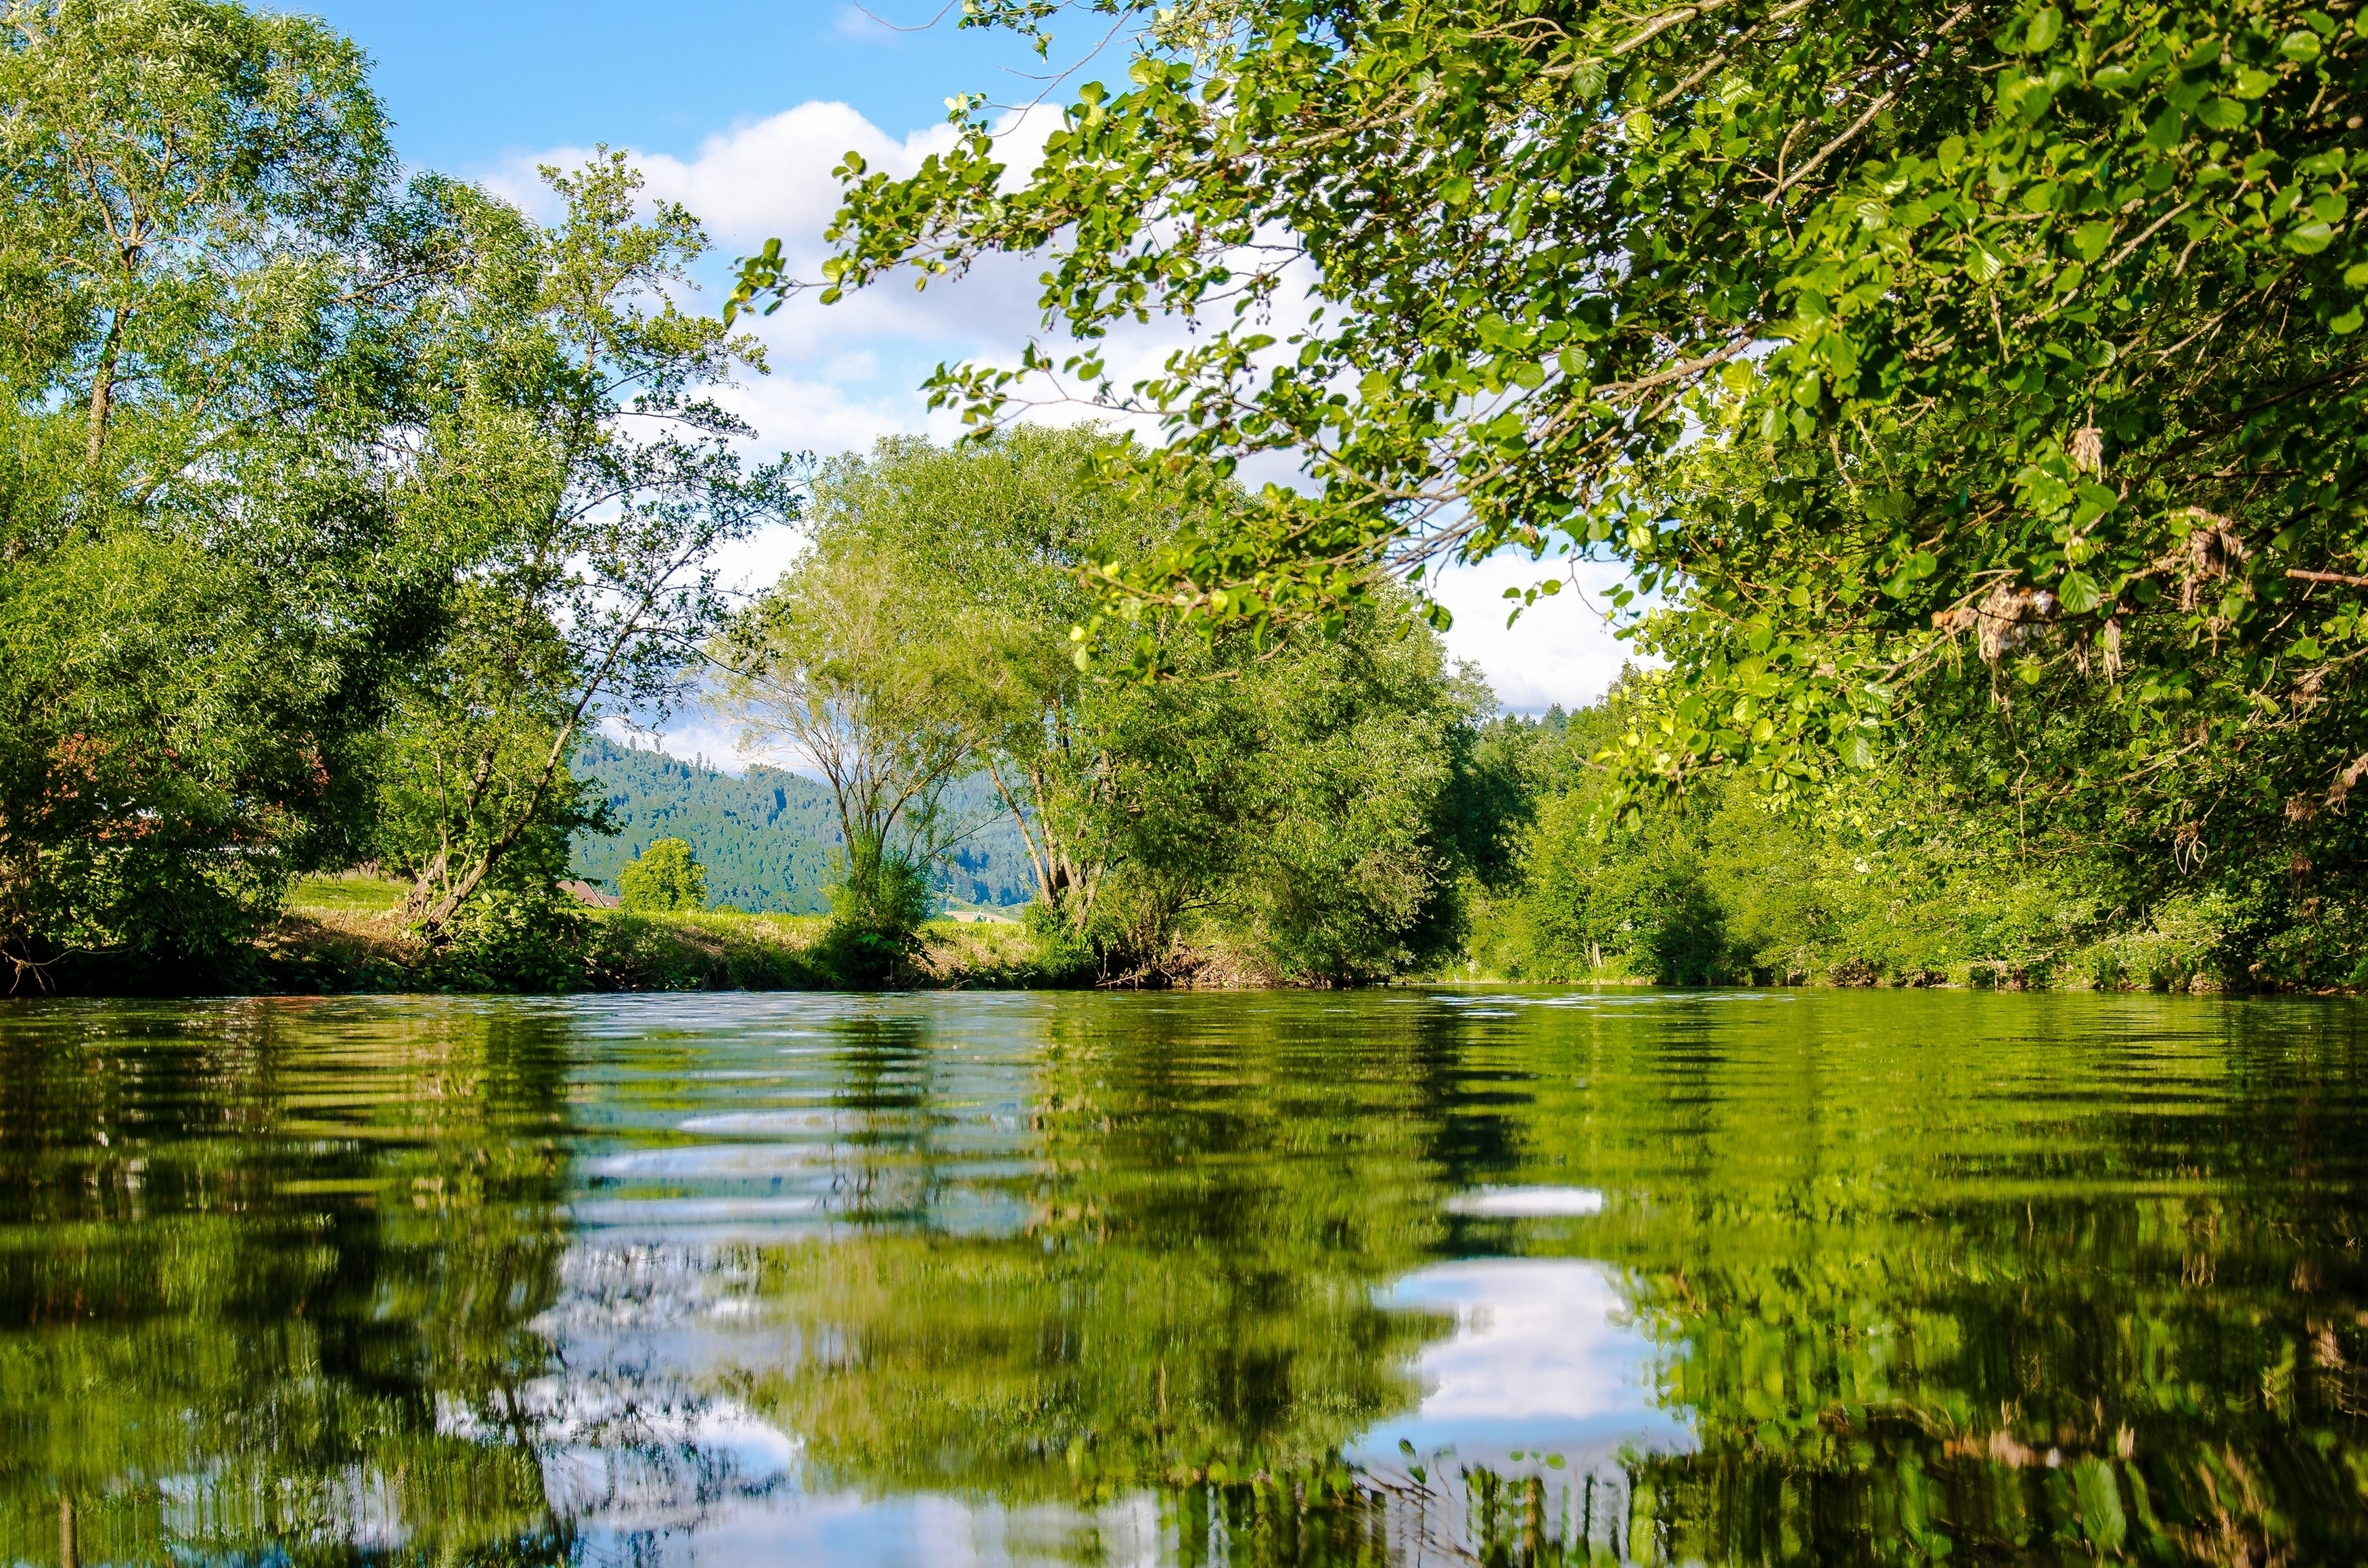 Panoramic Photo of Bushes Near Pond, Rural, River landscape, River, Scenic, HQ Photo